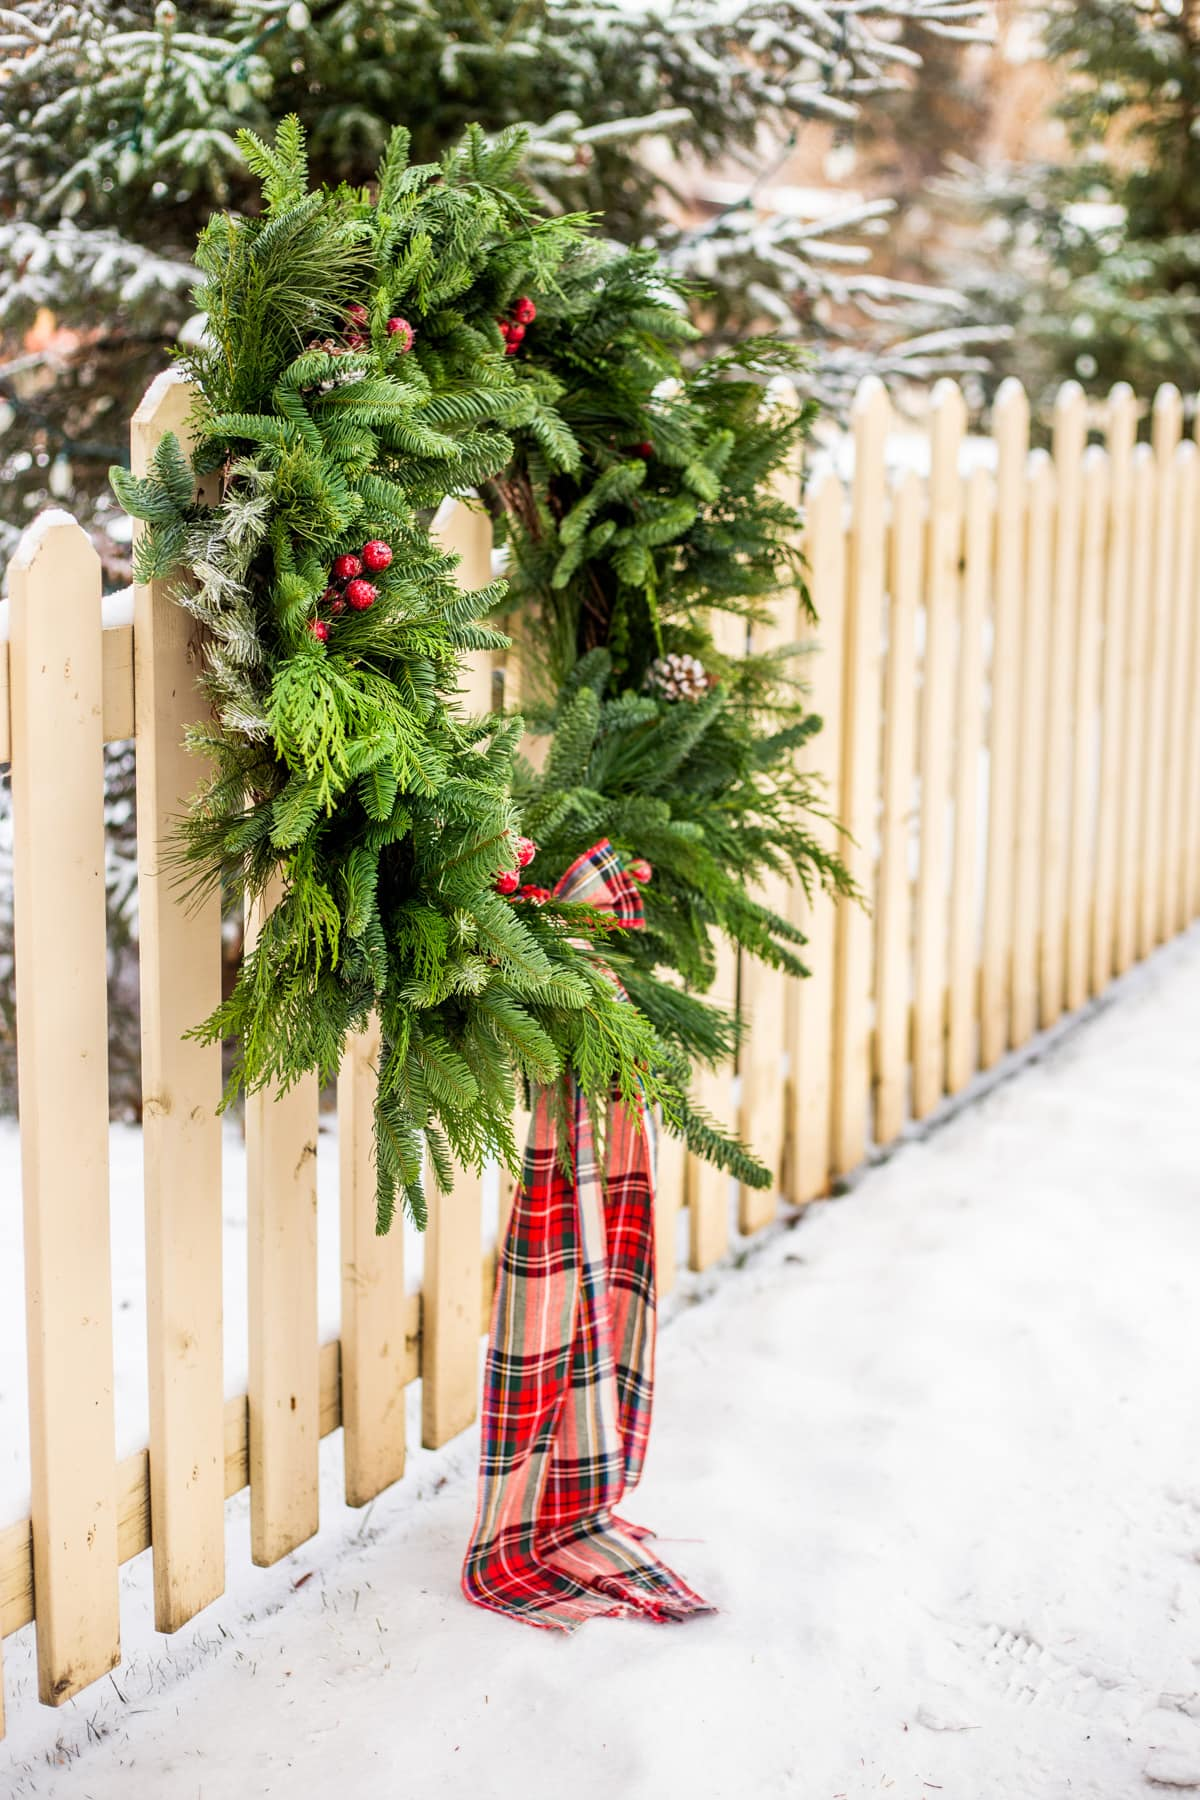 an evergreen wreath hanging on a fence